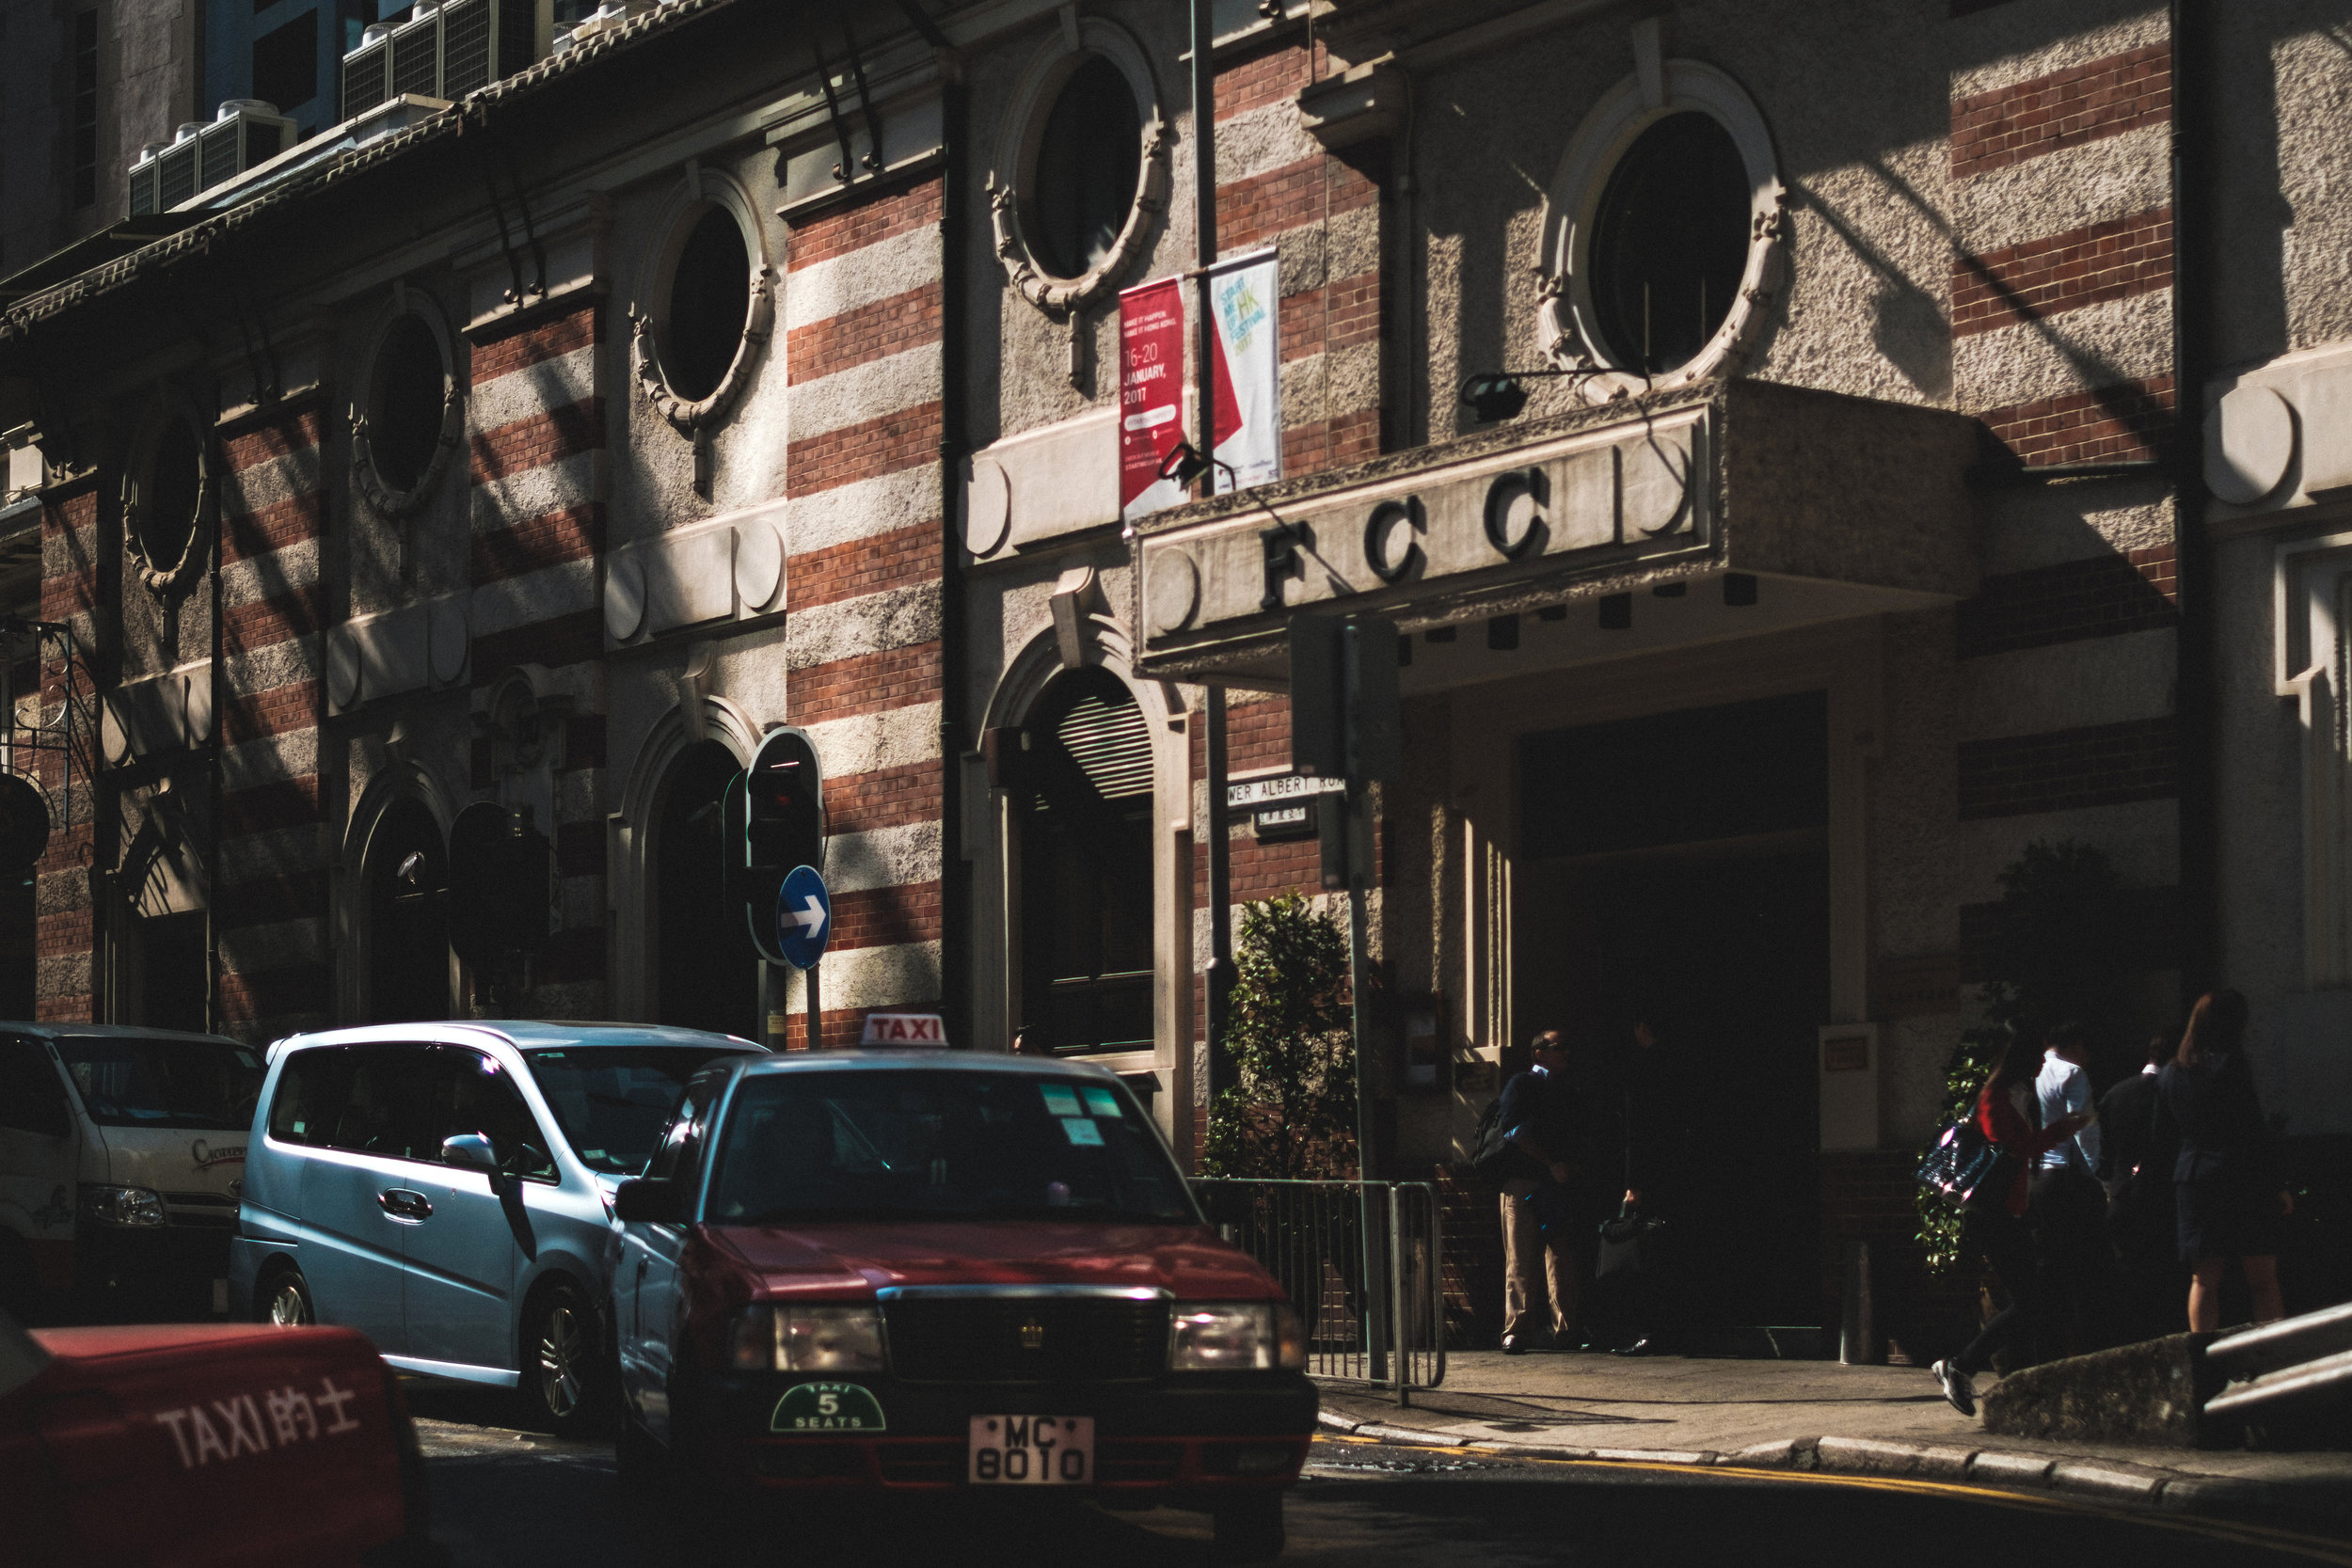 A red cab pulls out from the FCC, the Foreign Correspondence Club in Hong Kong